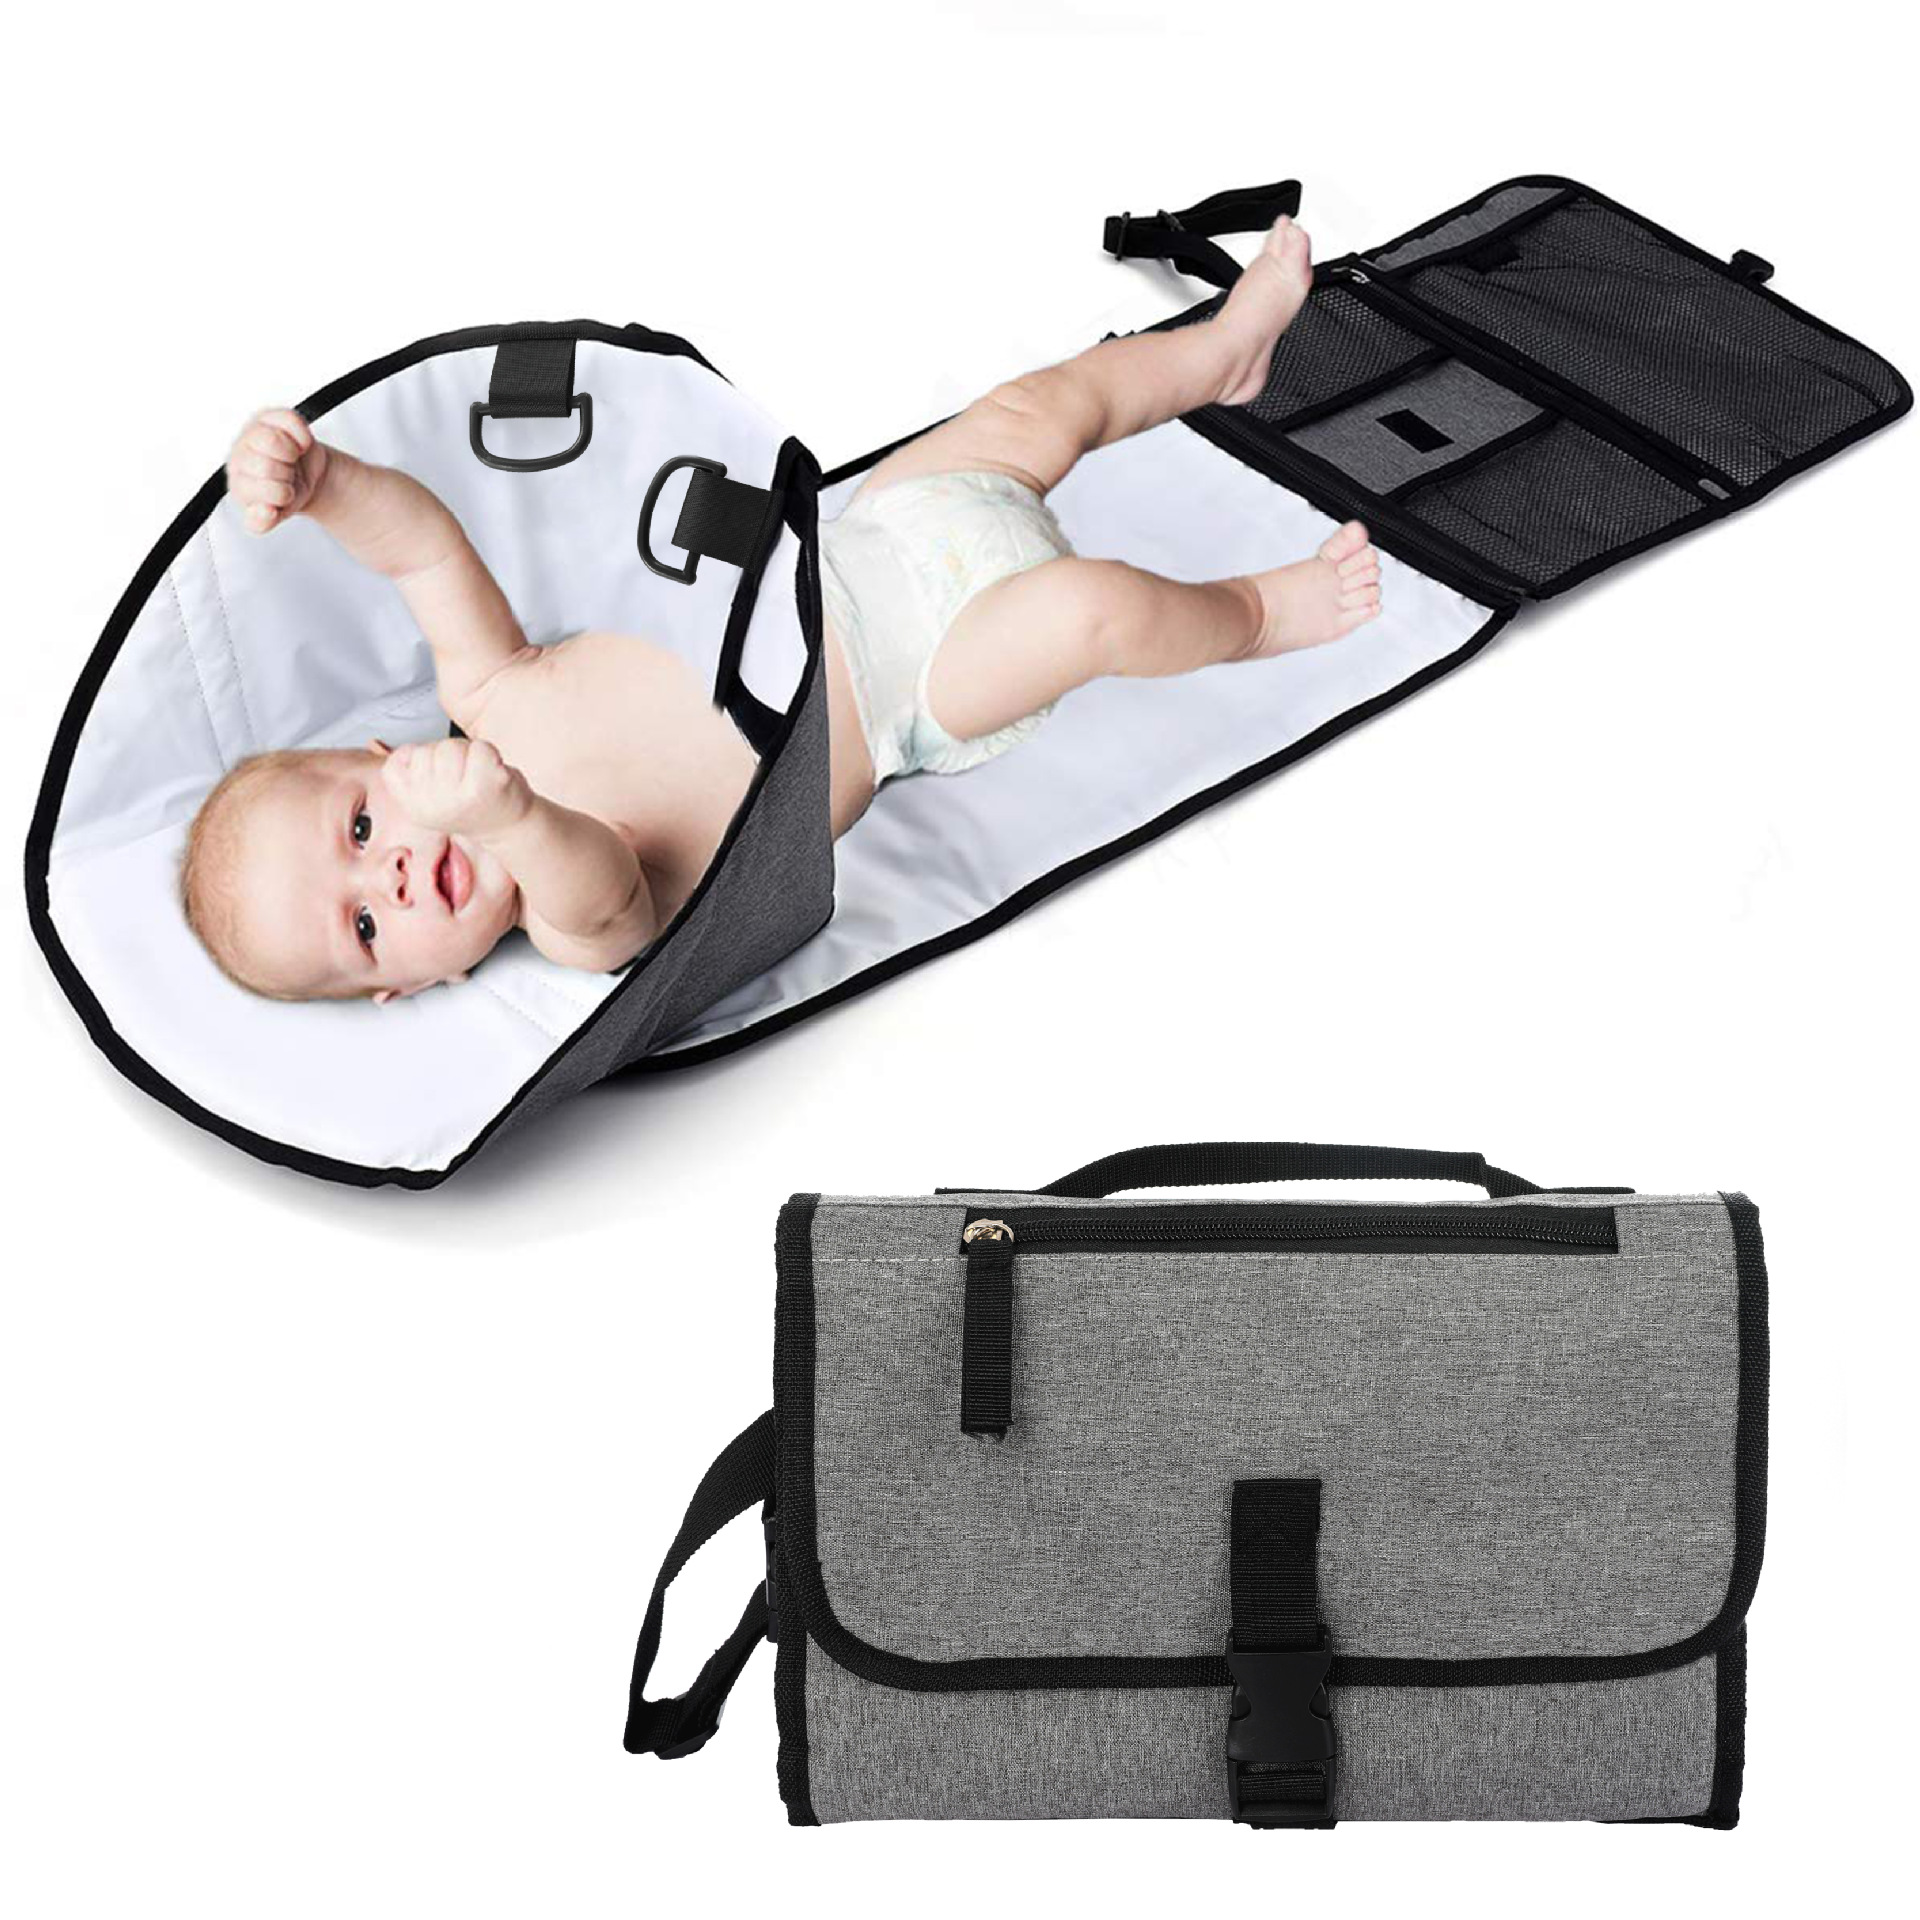 Easy Cleaning Waterproof Washable Mommy Portable Changing Mat Station Baby Sleeping Nappy Diaper Pad For Outdoor